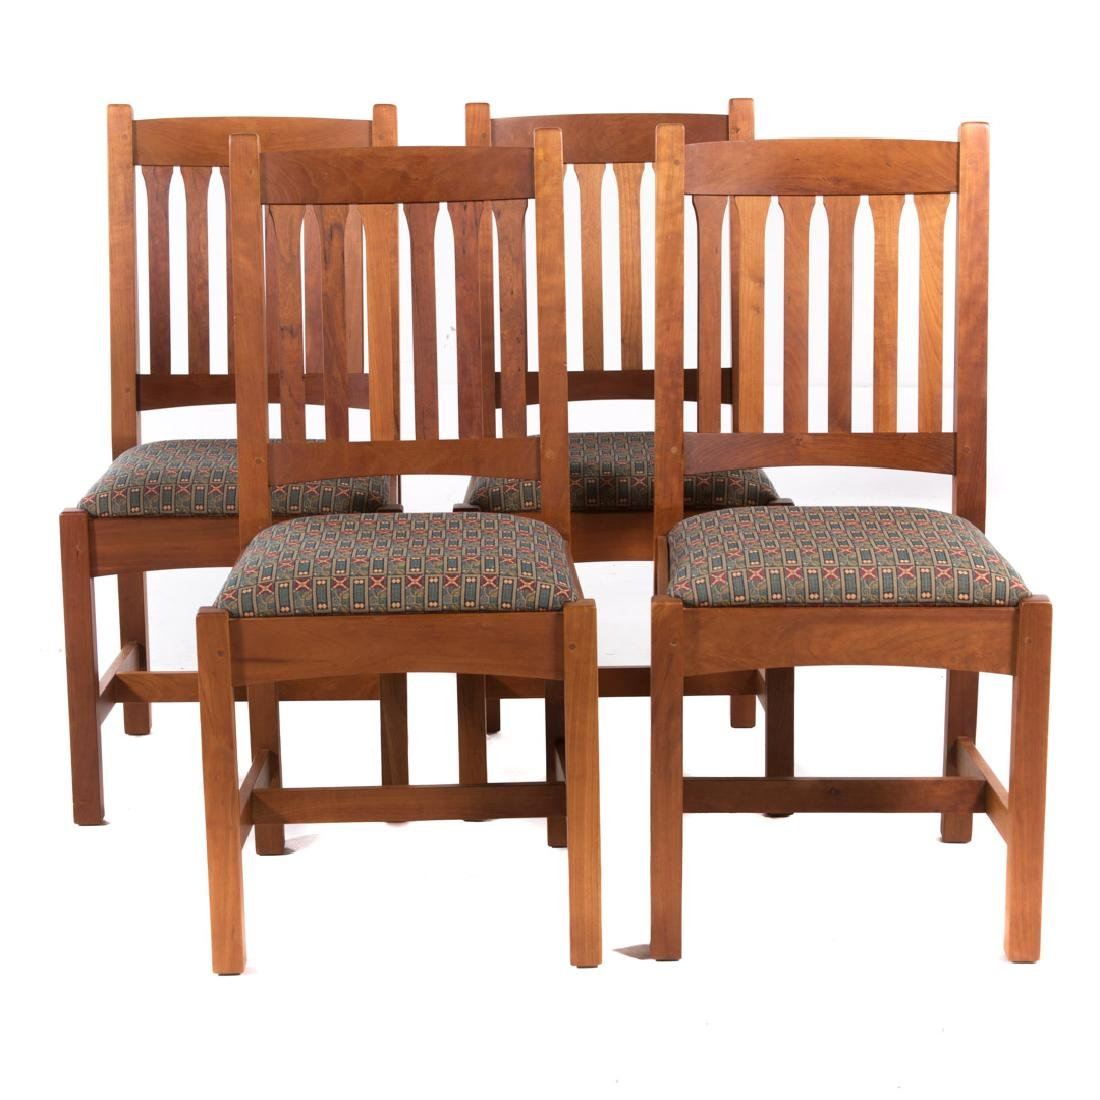 Four Stickley cherrywood side chairs